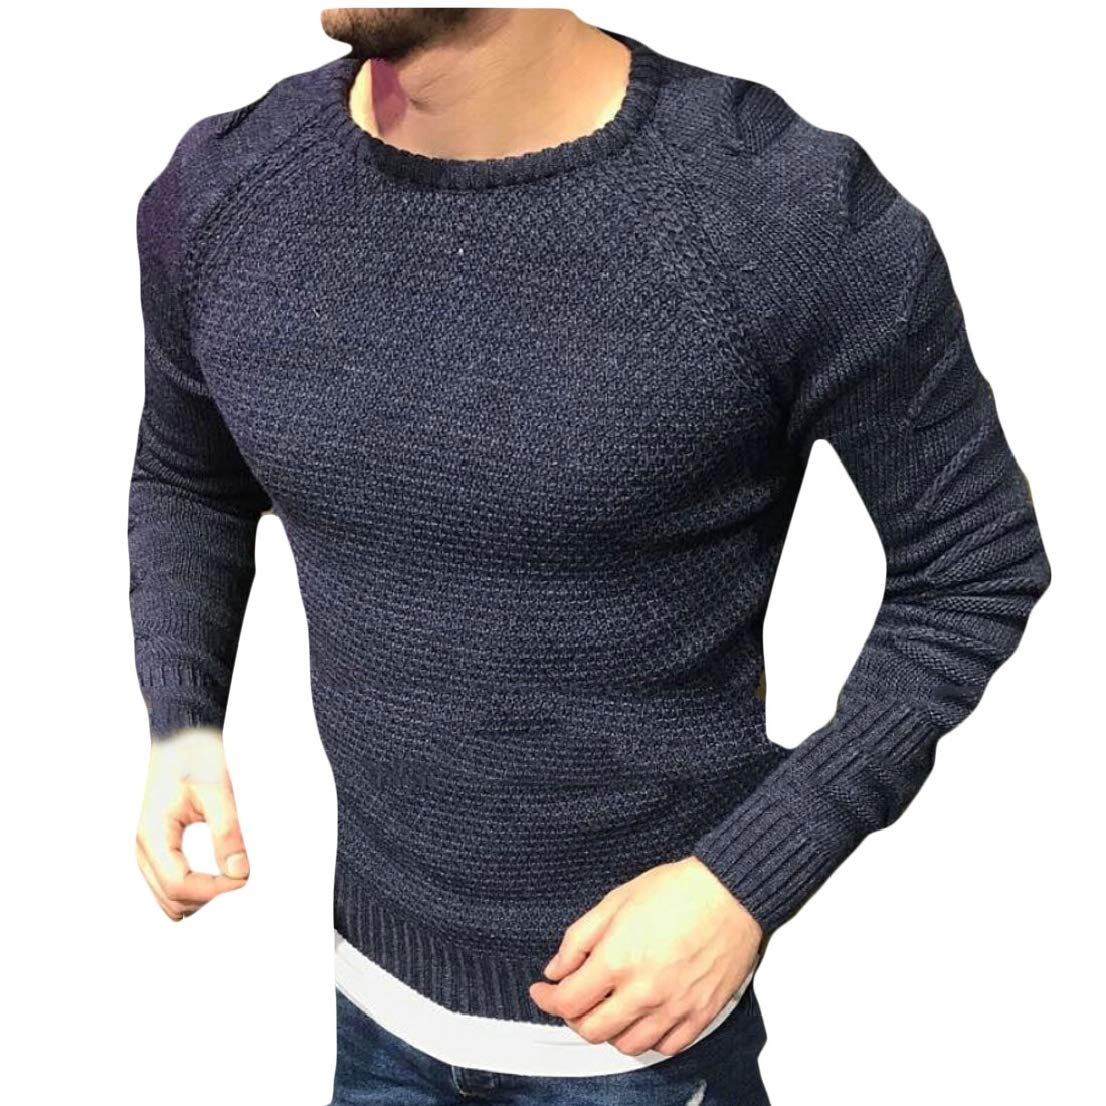 Generic Mens Round Neck Knitwear Solid Knitting Distressed Stylish Pullover Sweaters